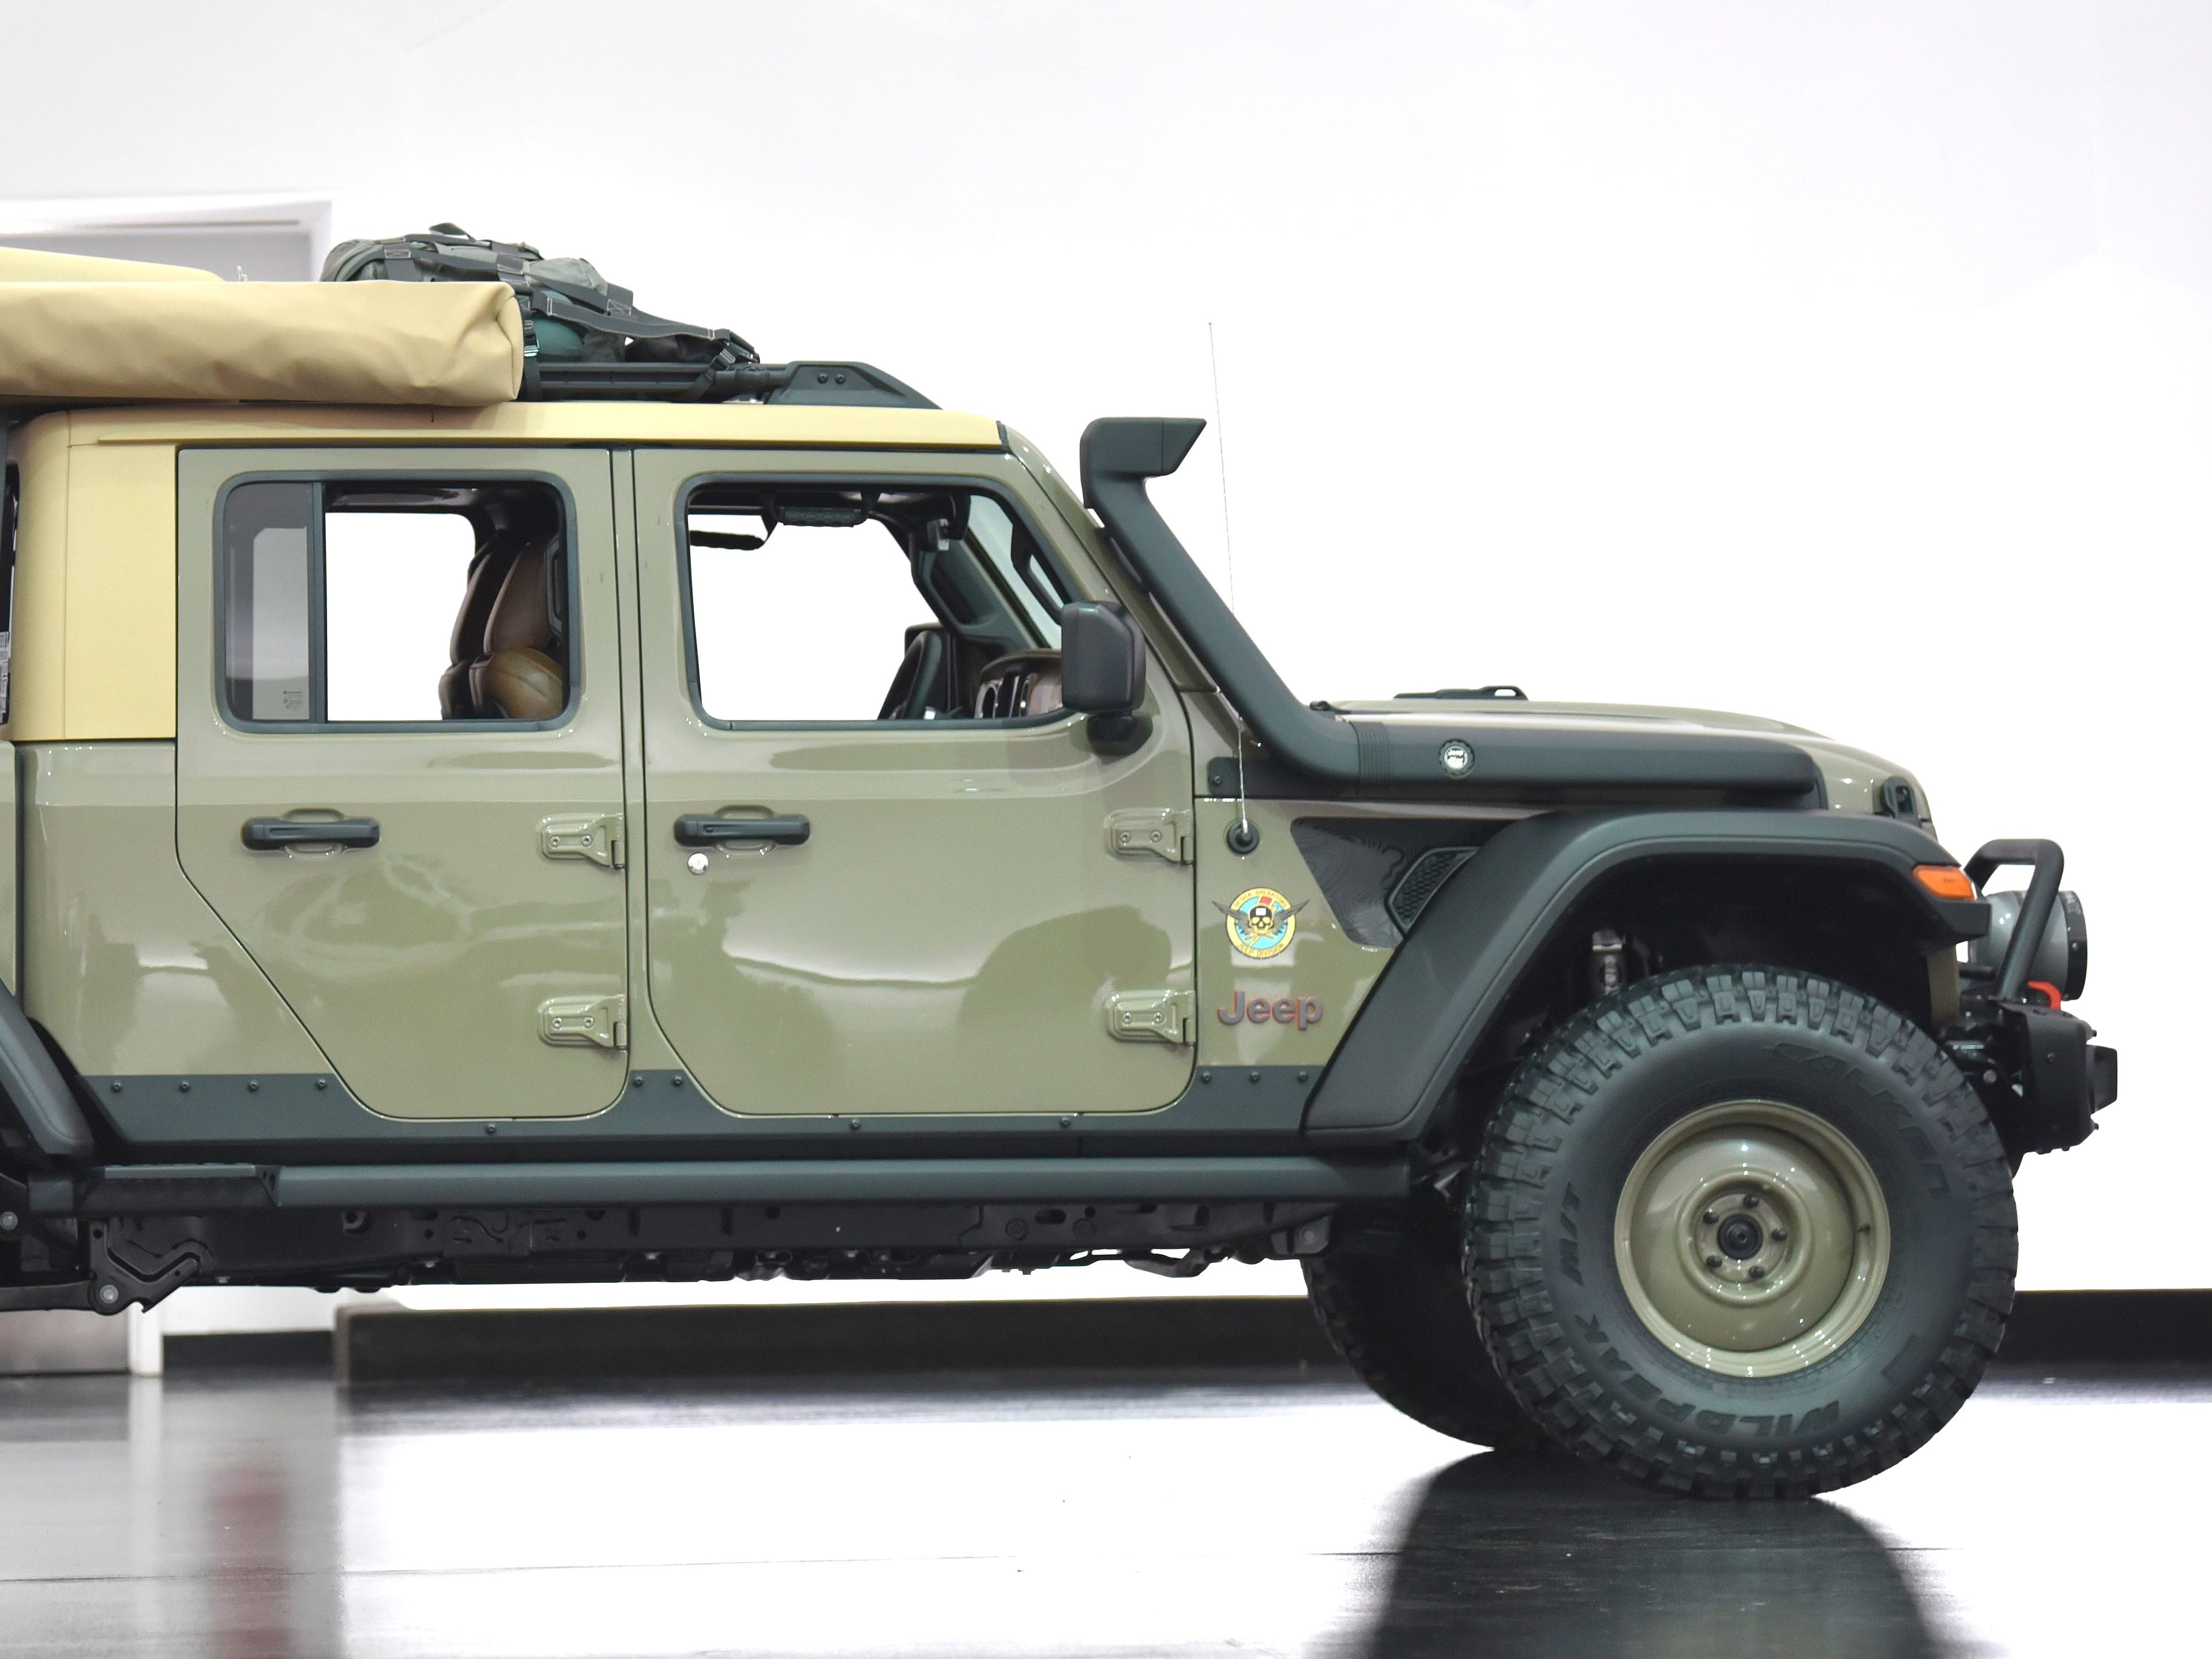 This is the Jeep Wayout, an overland concept vehicle, colored in Gator Green.